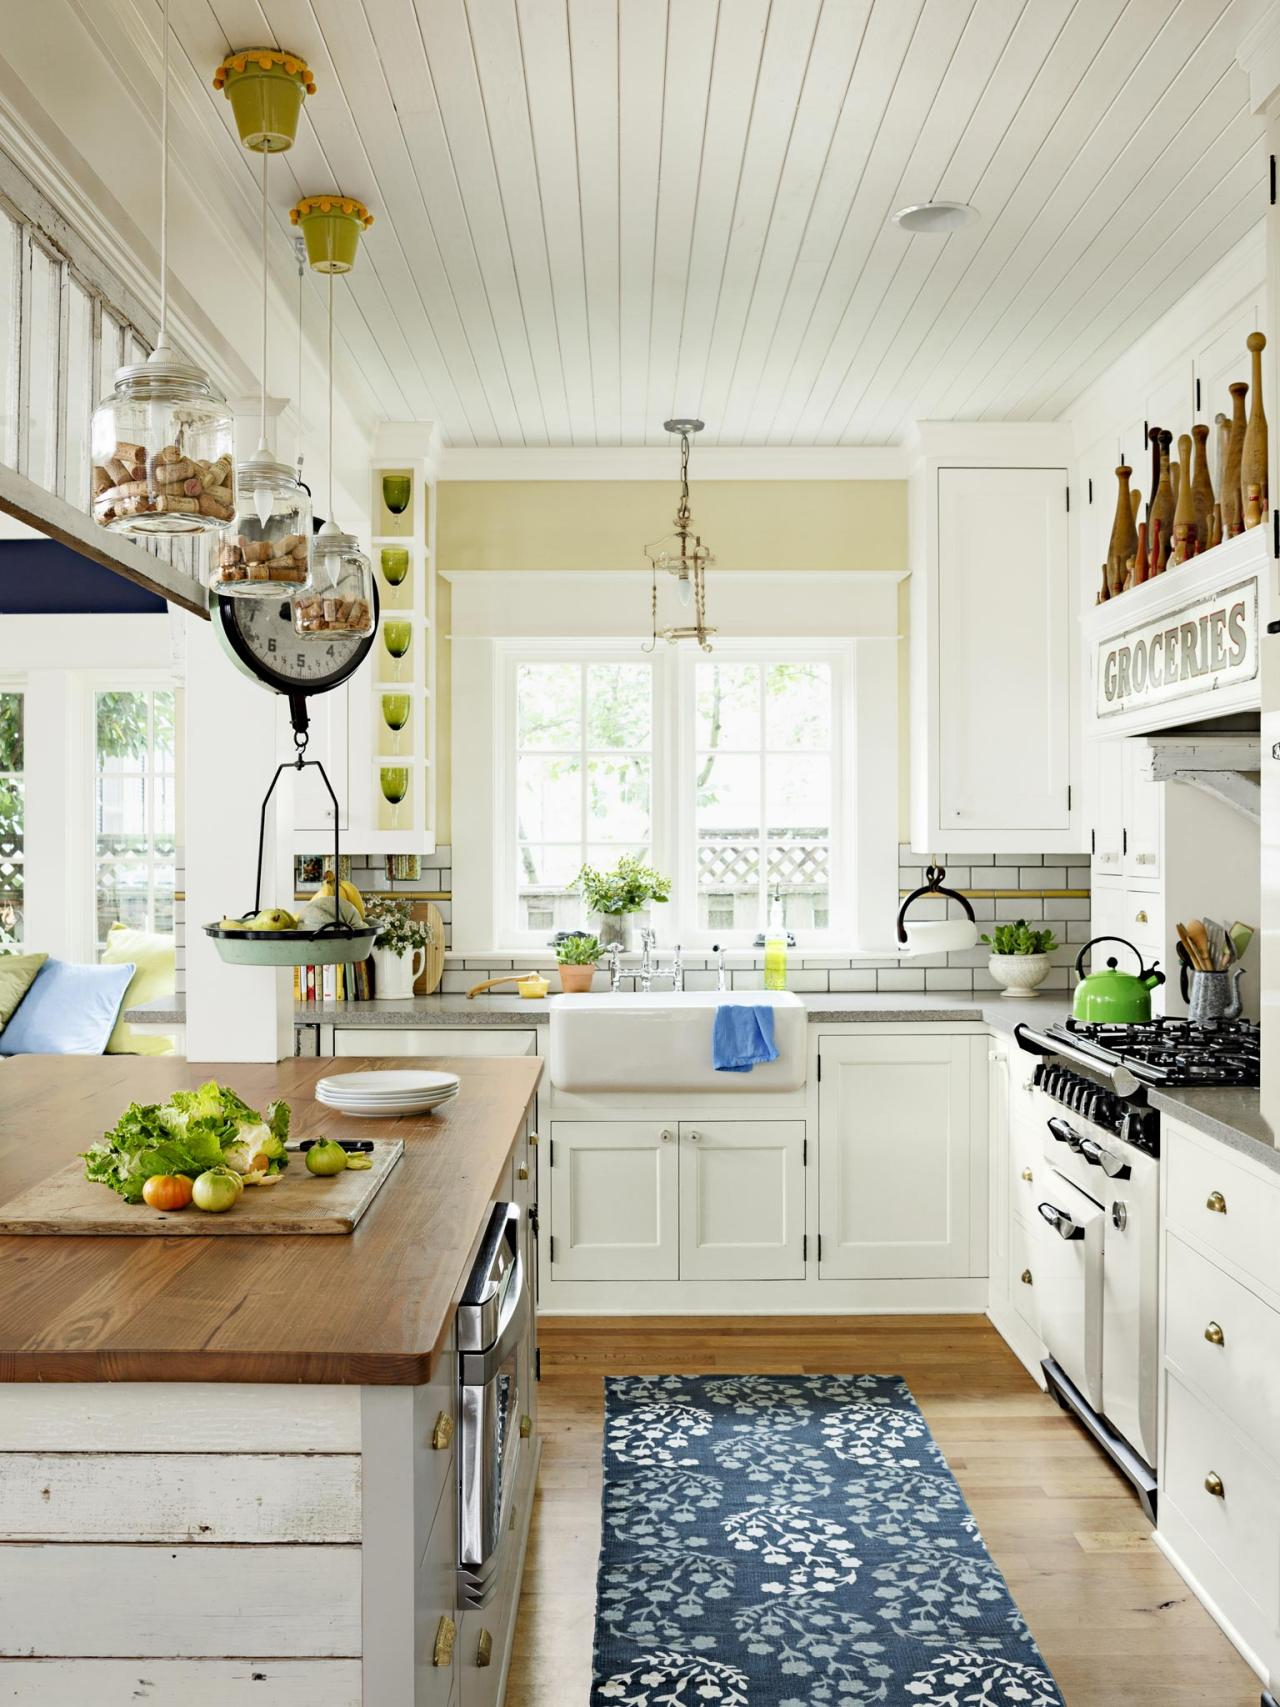 Antique Kitchen Decorating: Pictures & Ideas From HGTV